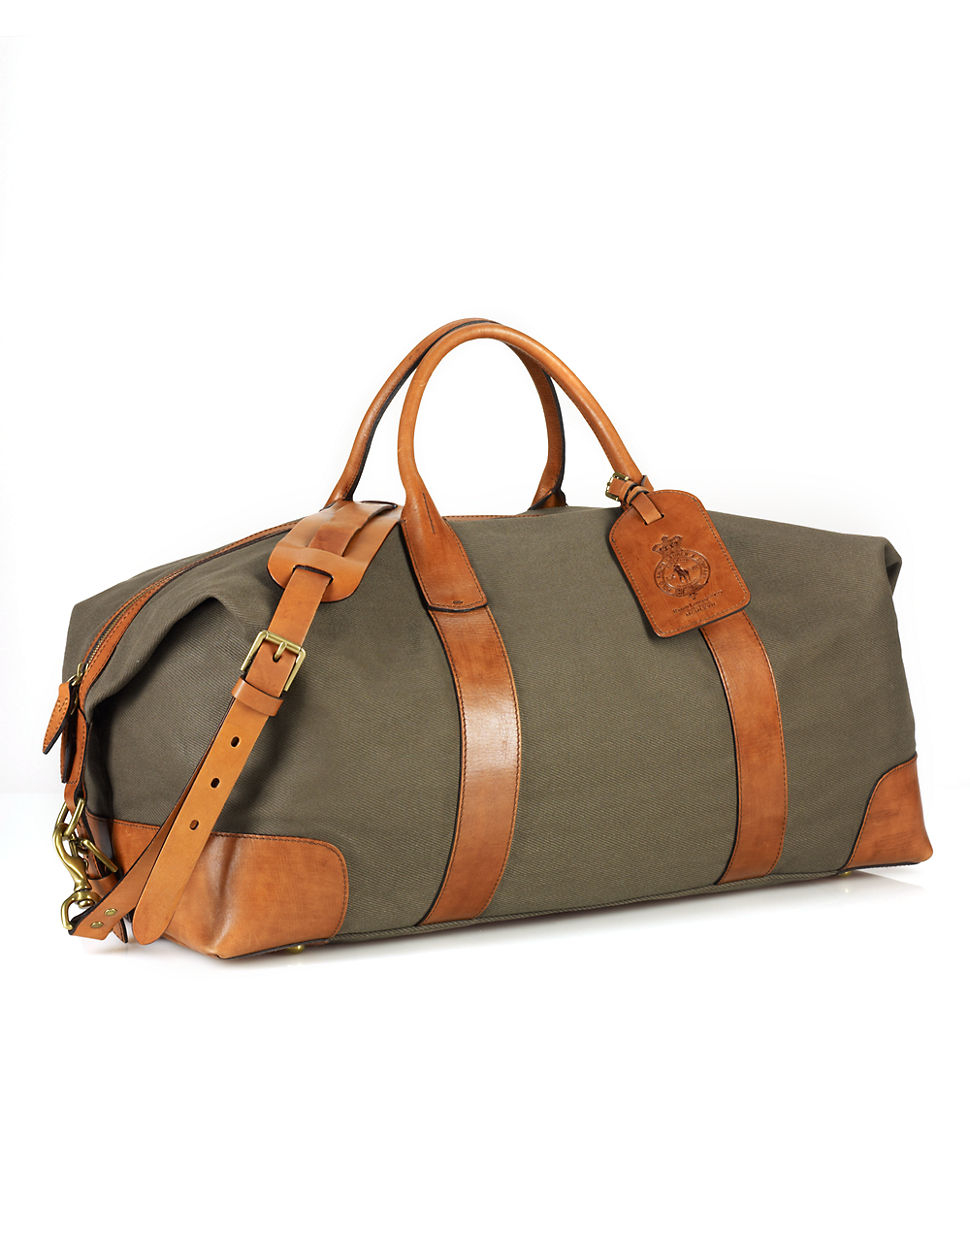 ... coupon code lyst polo ralph lauren canvas leather duffel bag in natural  for men a0bef 6e927 ad12147d27726